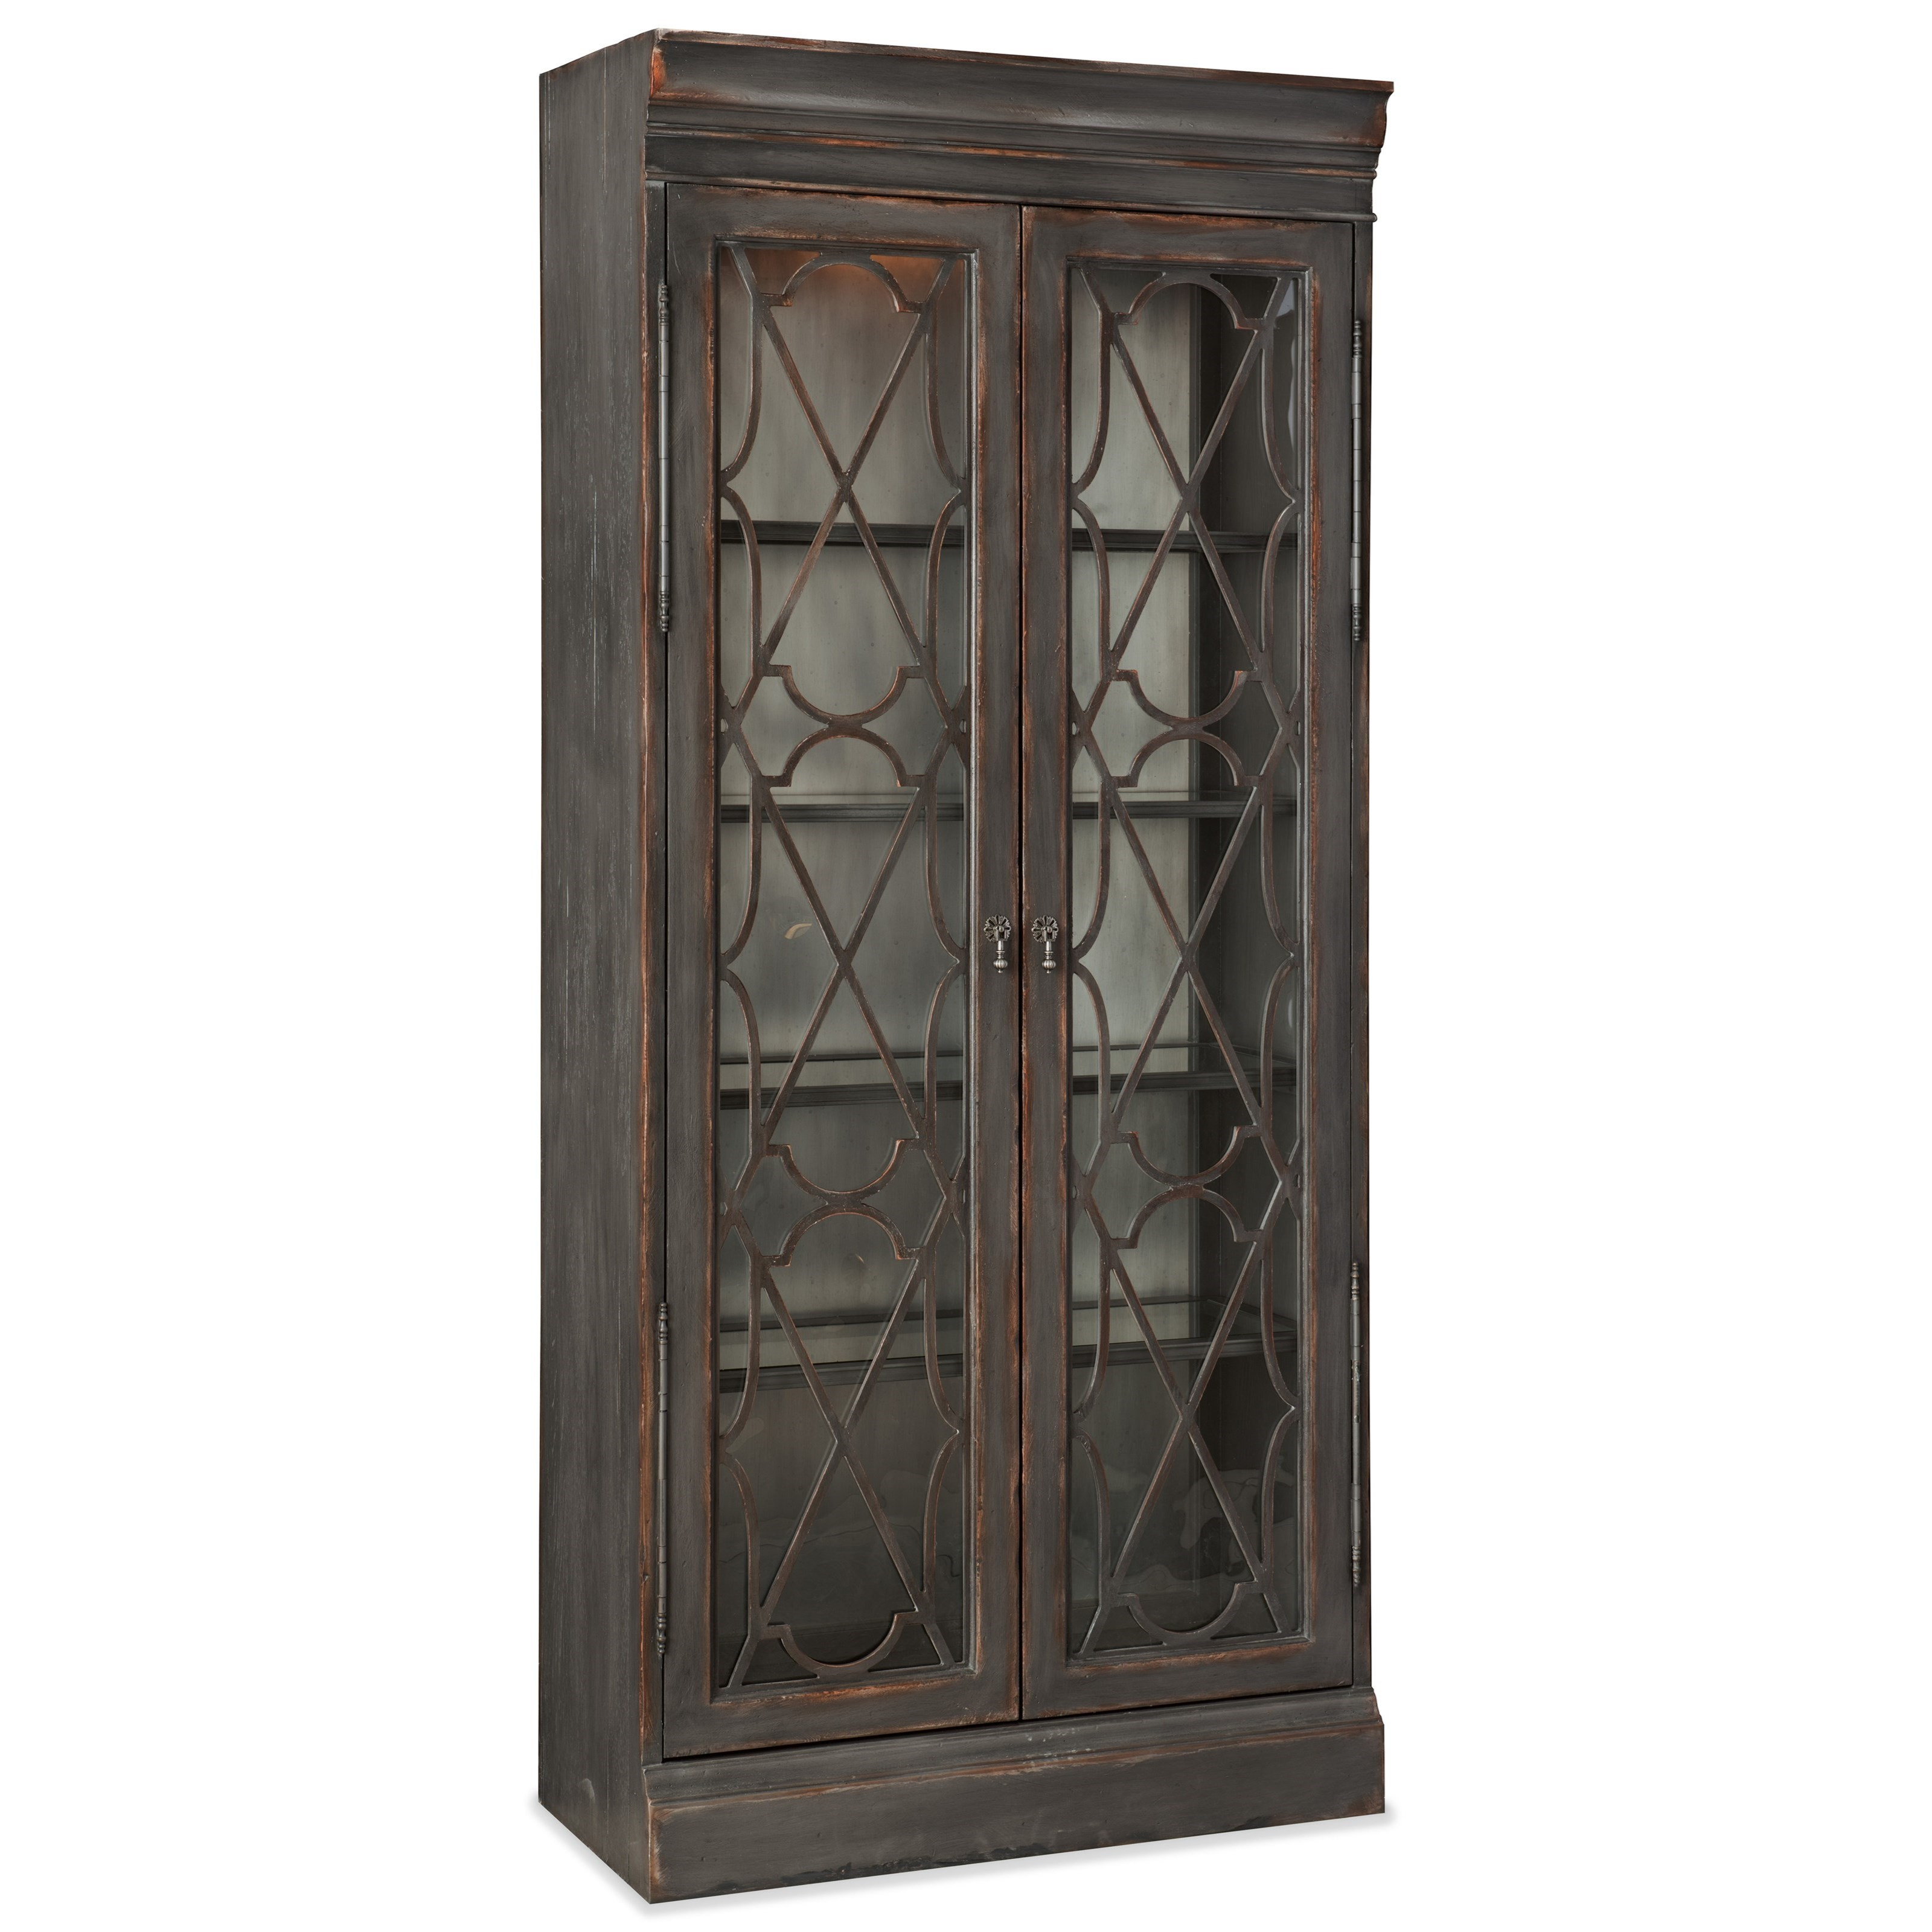 Arabella Bunching Display Cabinet by Hooker Furniture at Fisher Home Furnishings